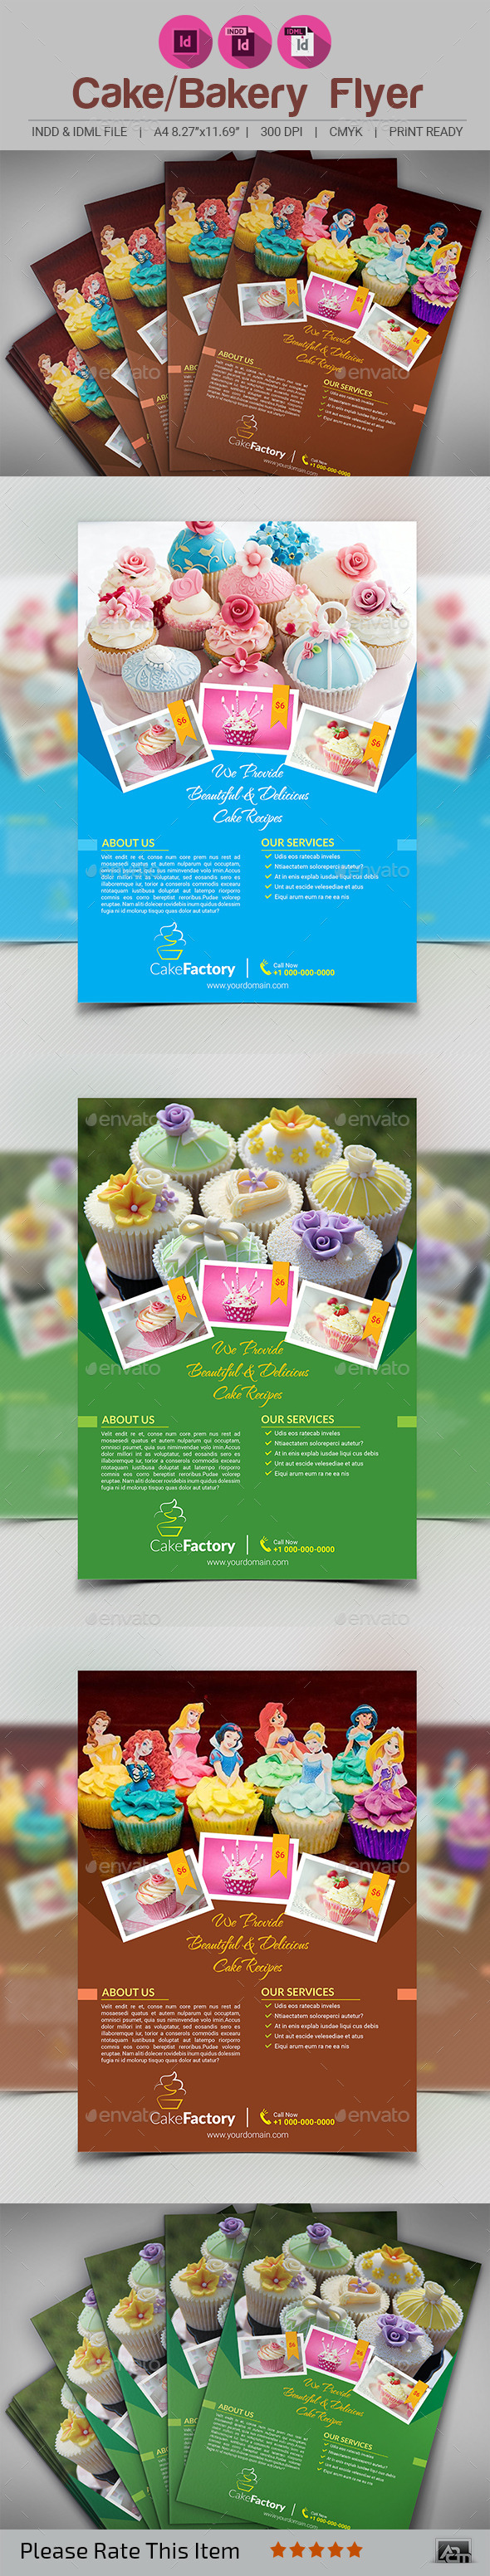 Cake / Bakery Flyer or Magazine Ad